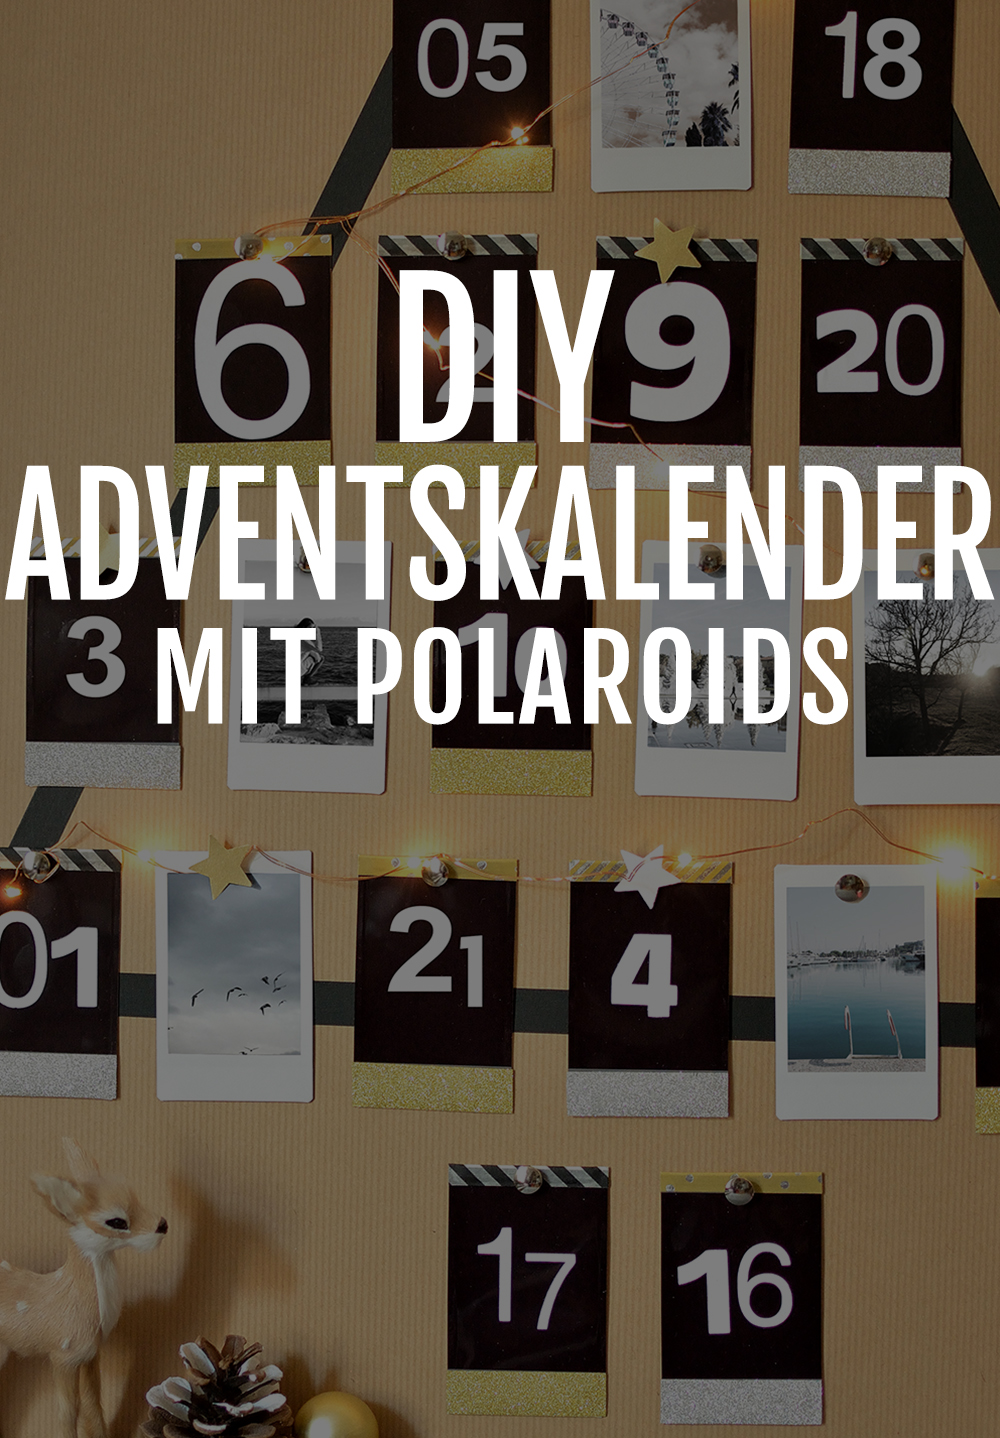 dein sch ner polaroid adventskalender selber basteln. Black Bedroom Furniture Sets. Home Design Ideas